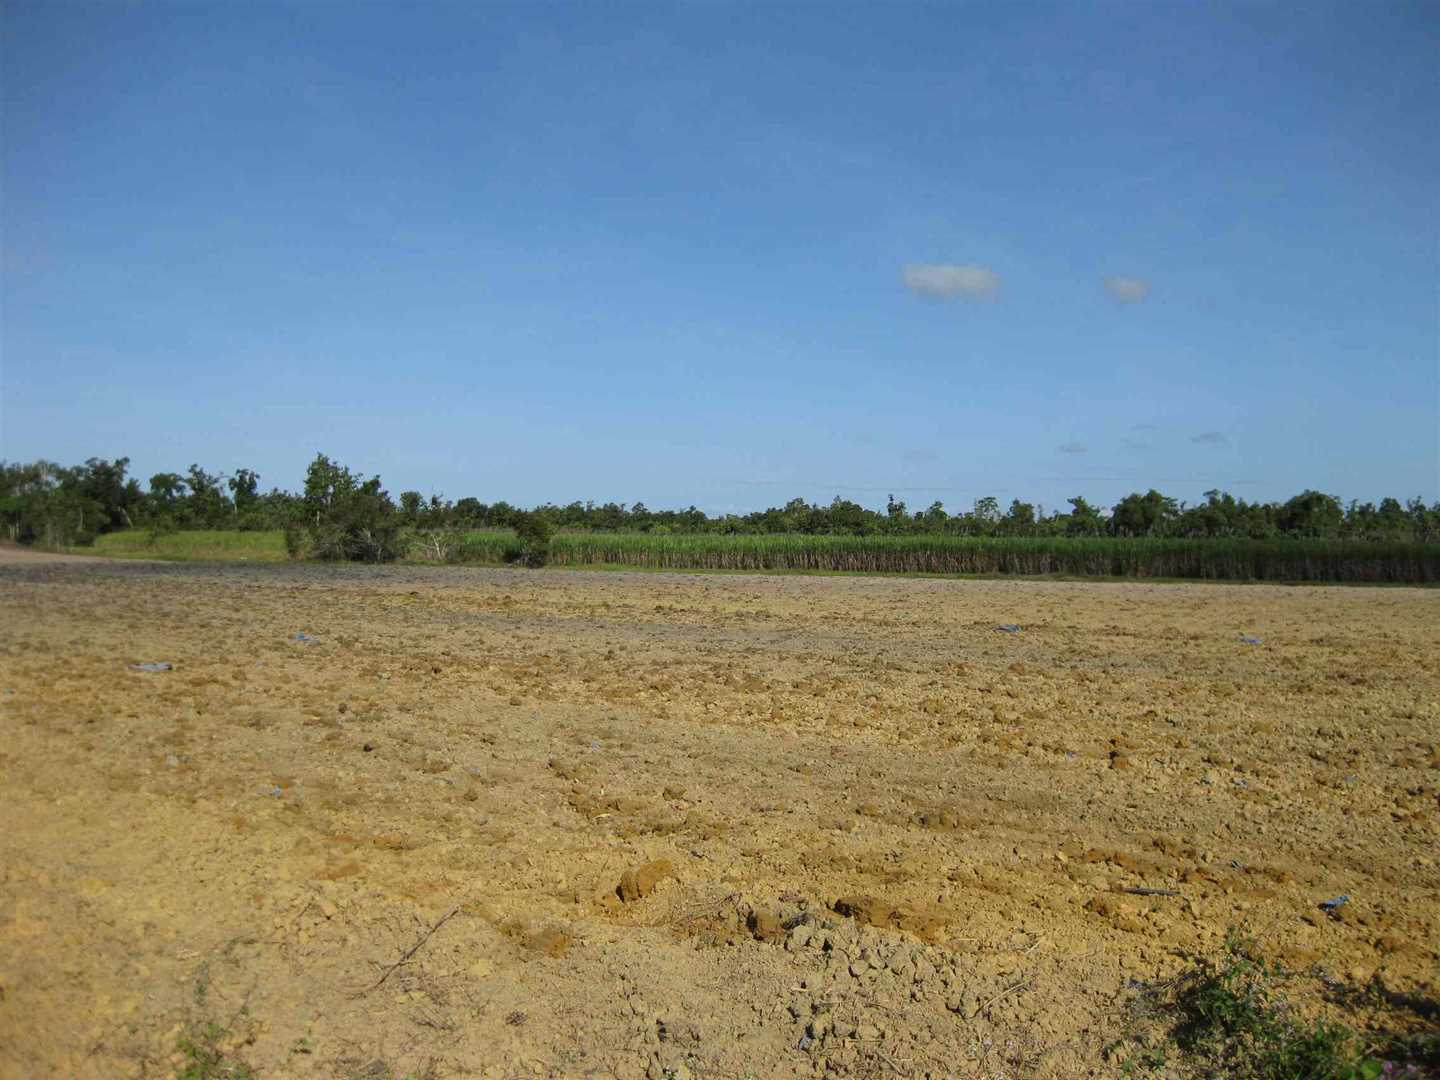 View of part of property showing some fallow land and distant cane